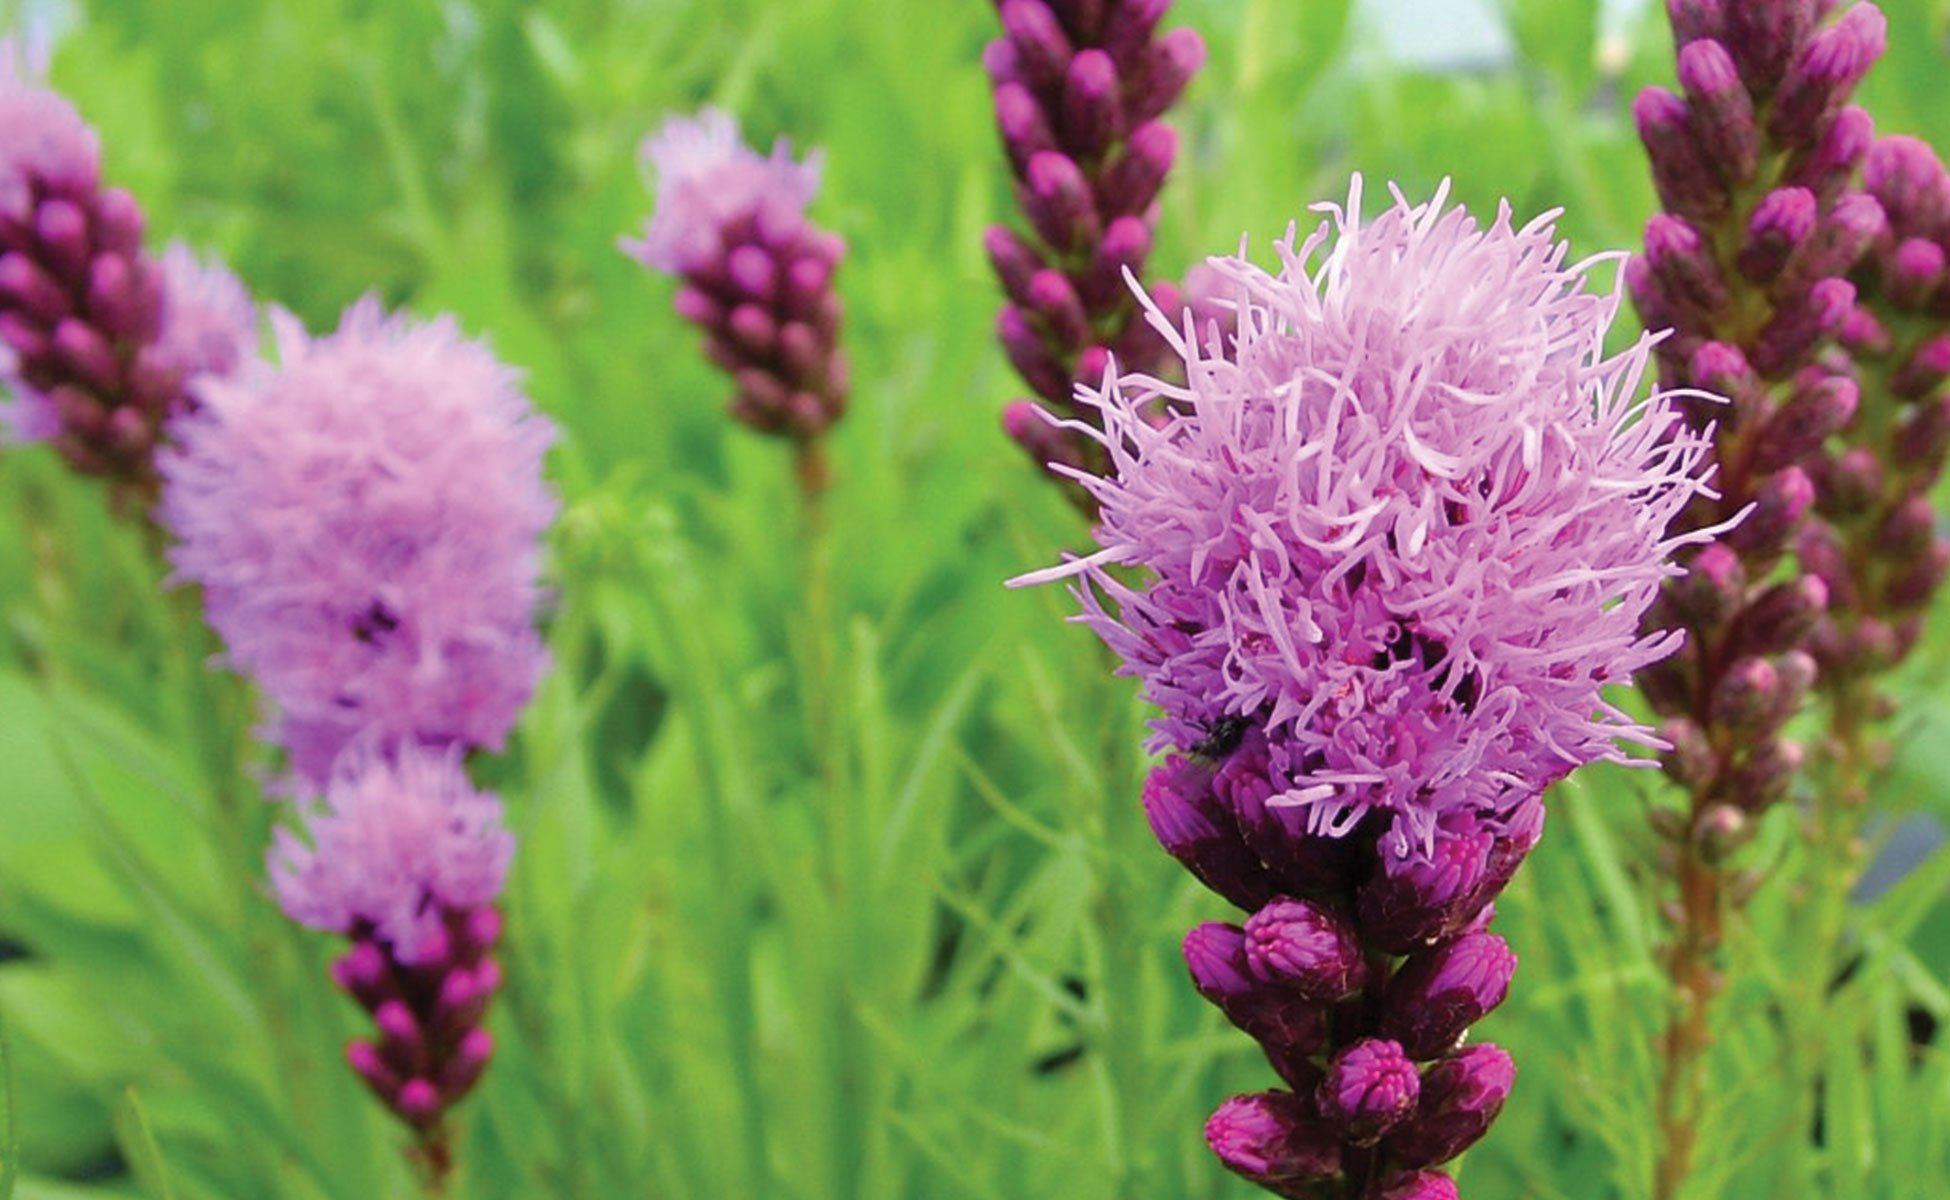 johnsons-nursery-menomonee-falls-about-liatris